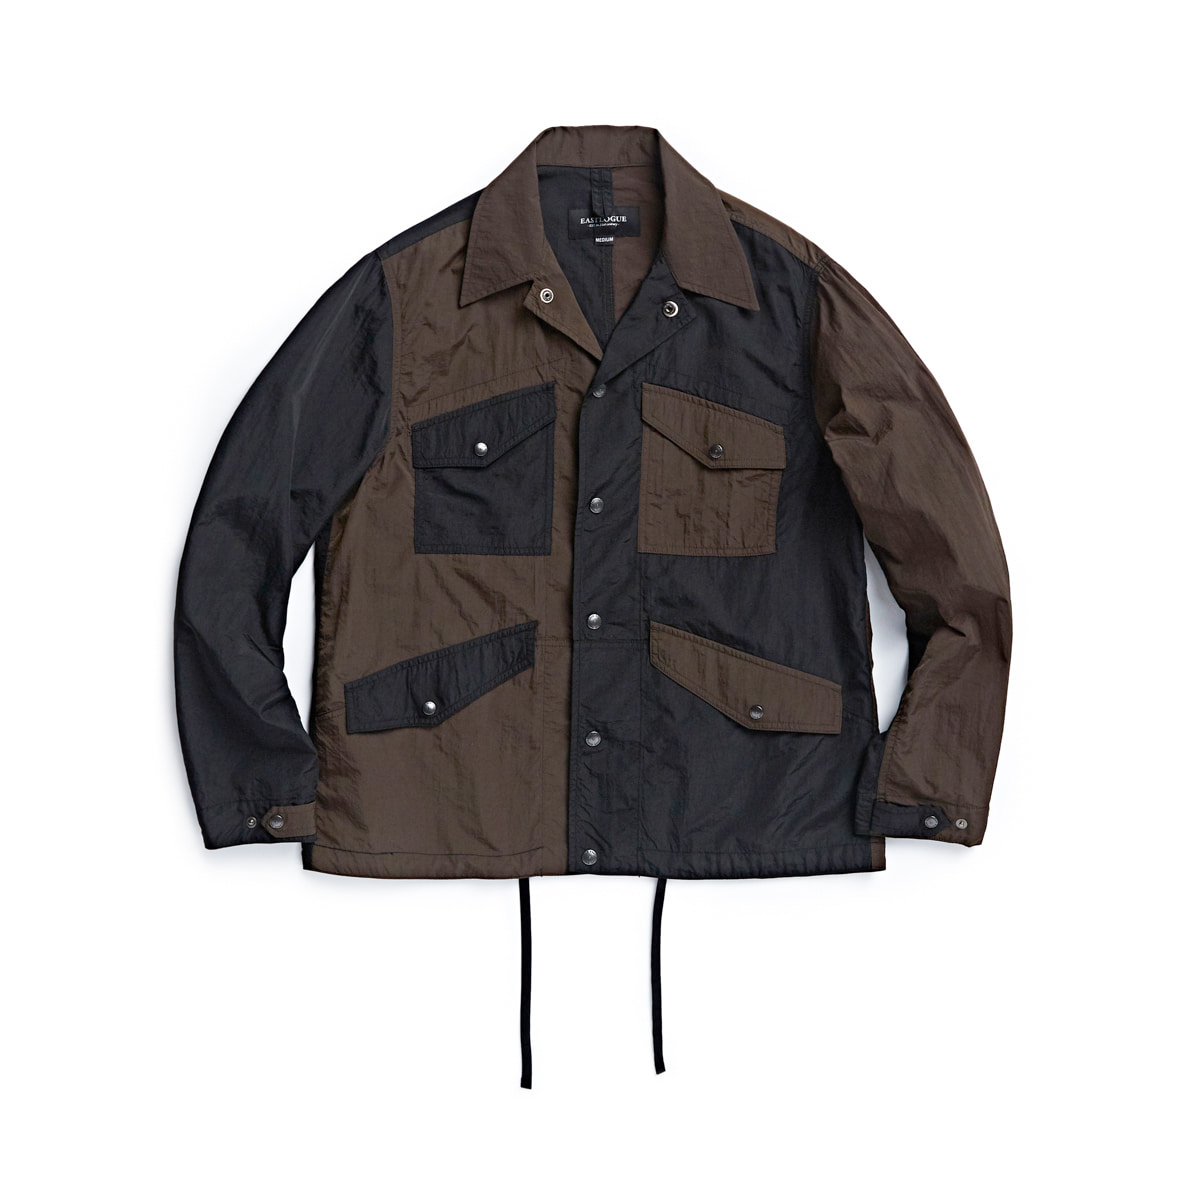 [EASTLOGUE] MECHANIC JACKET 'MIXED NYLON WASHER'